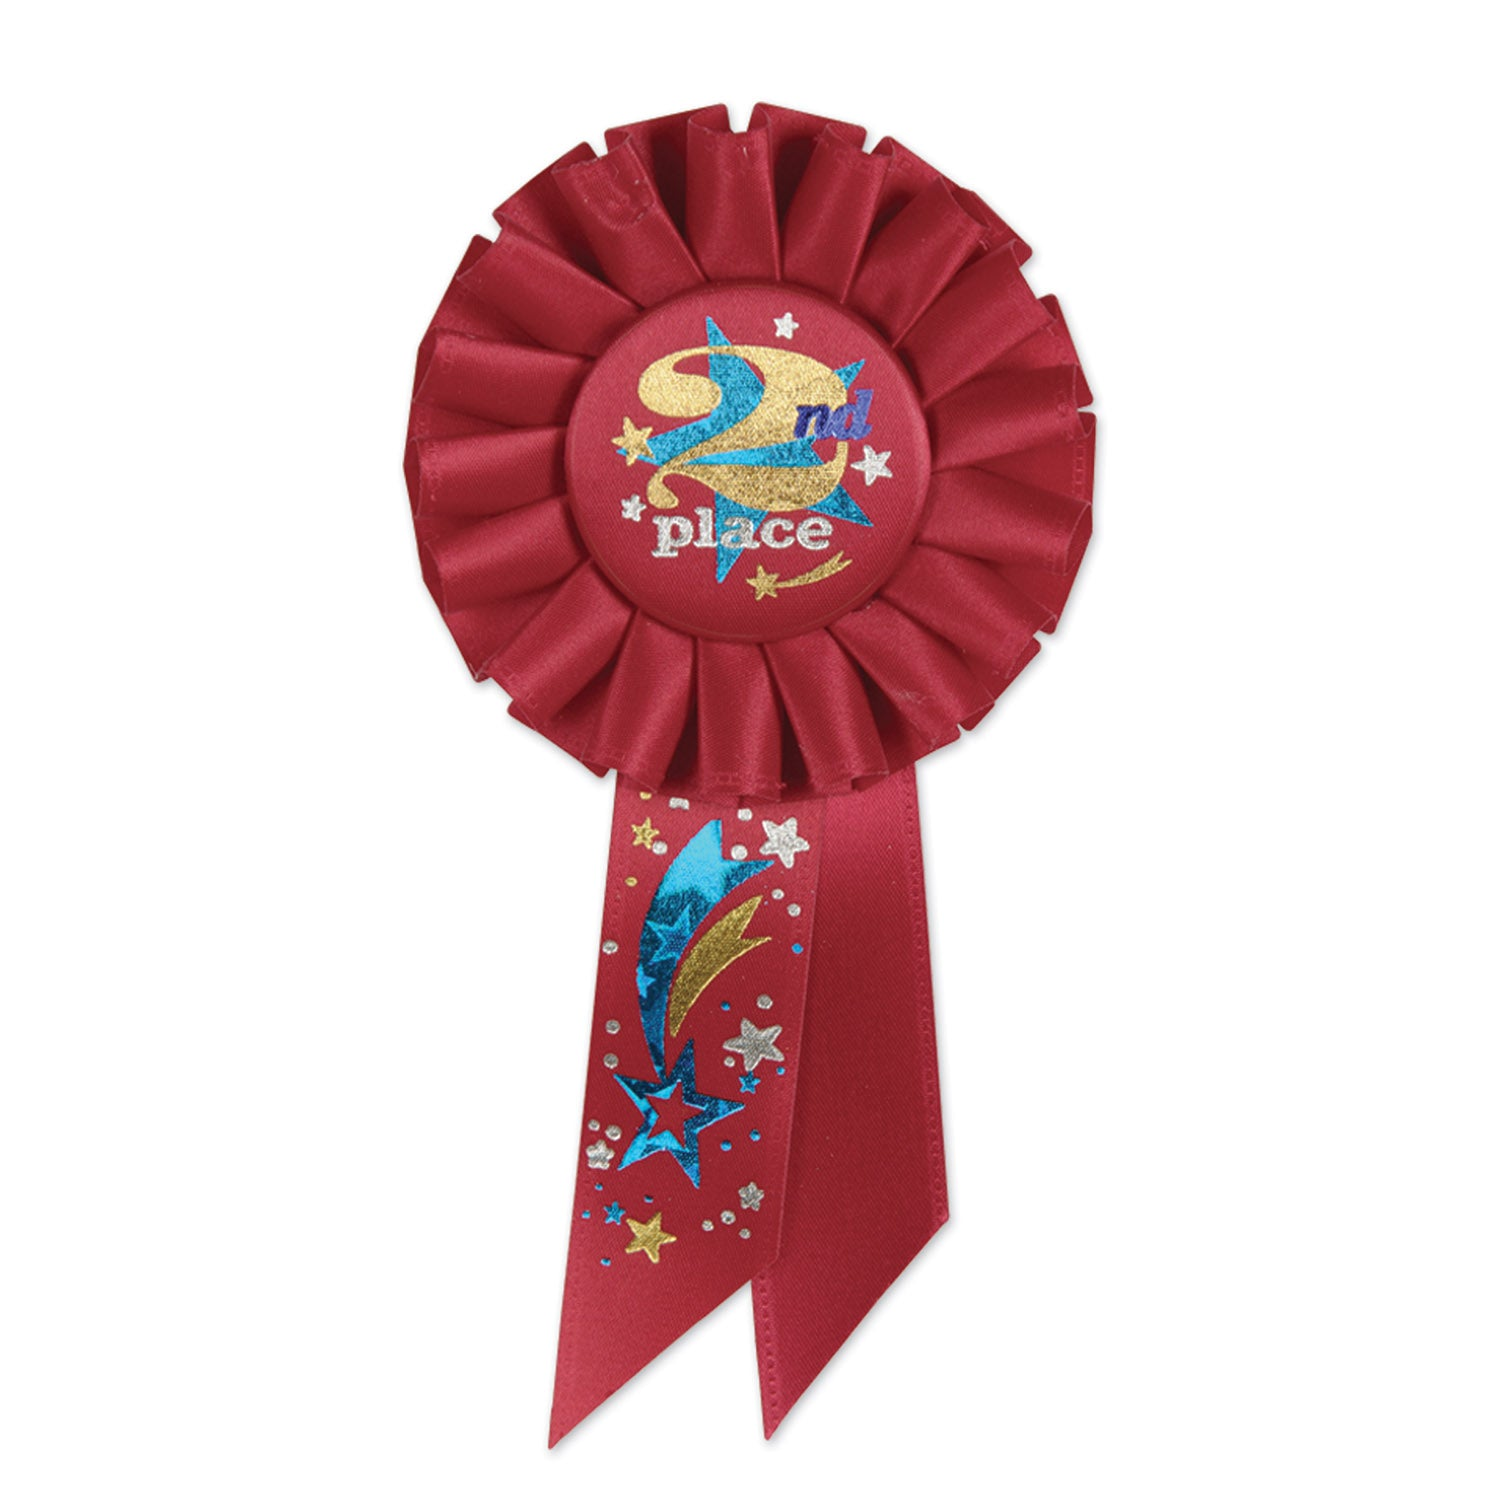 2nd Place Rosette by Beistle - Sports Theme Decorations